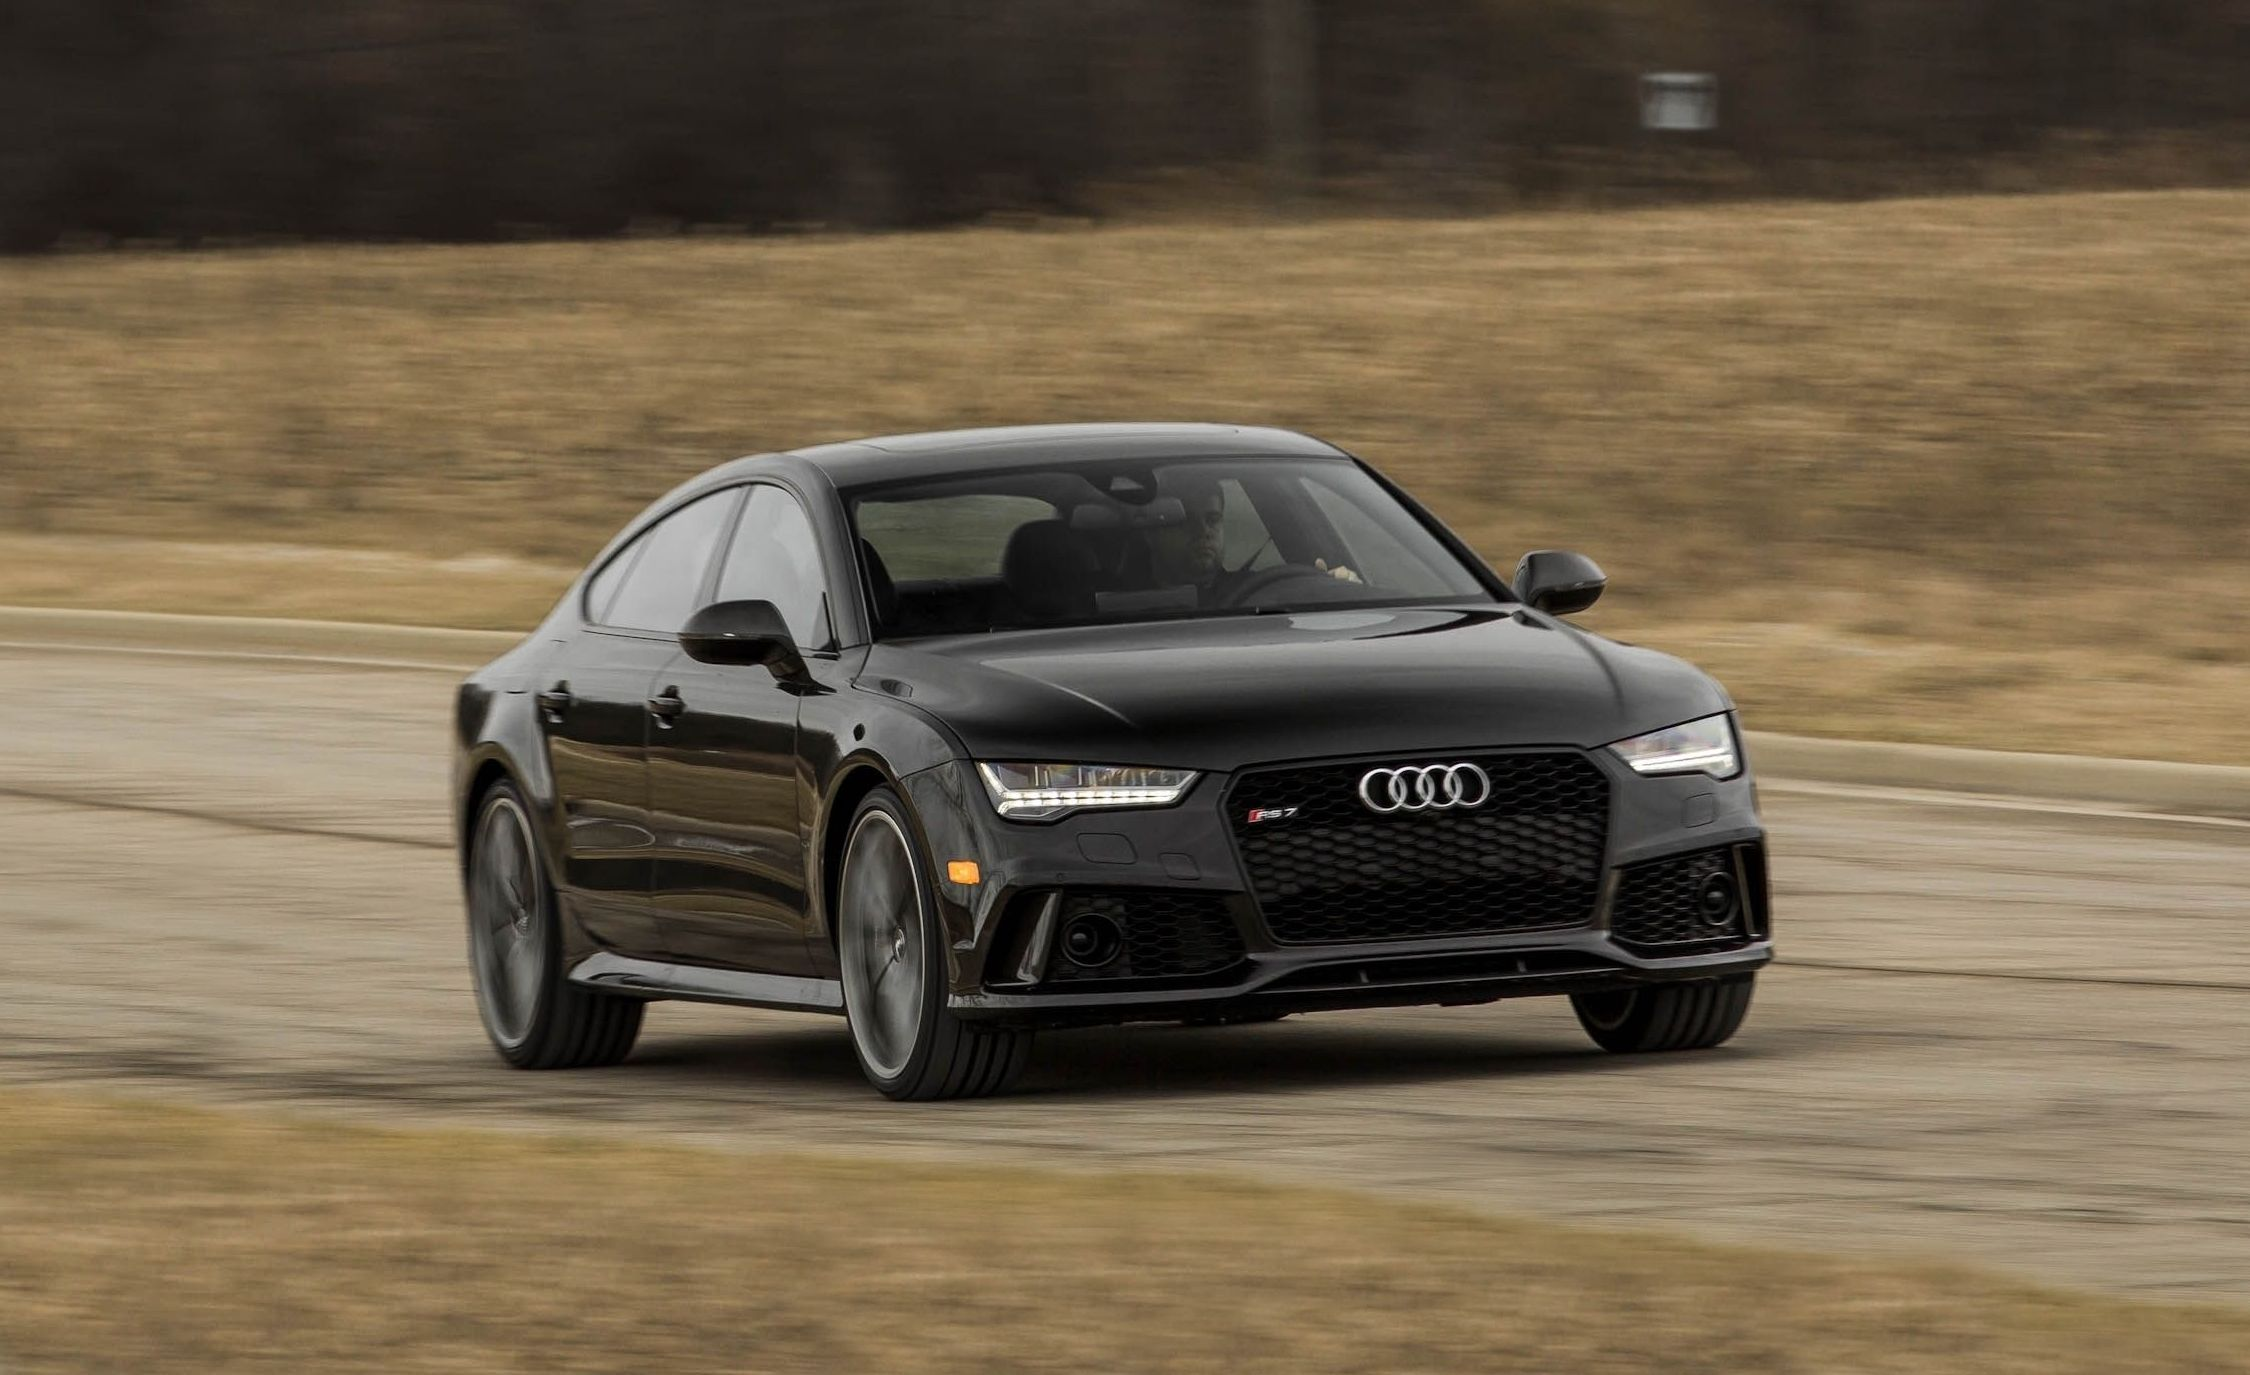 Mazda Connect Apps >> Audi RS7 Reviews | Audi RS7 Price, Photos, and Specs | Car and Driver